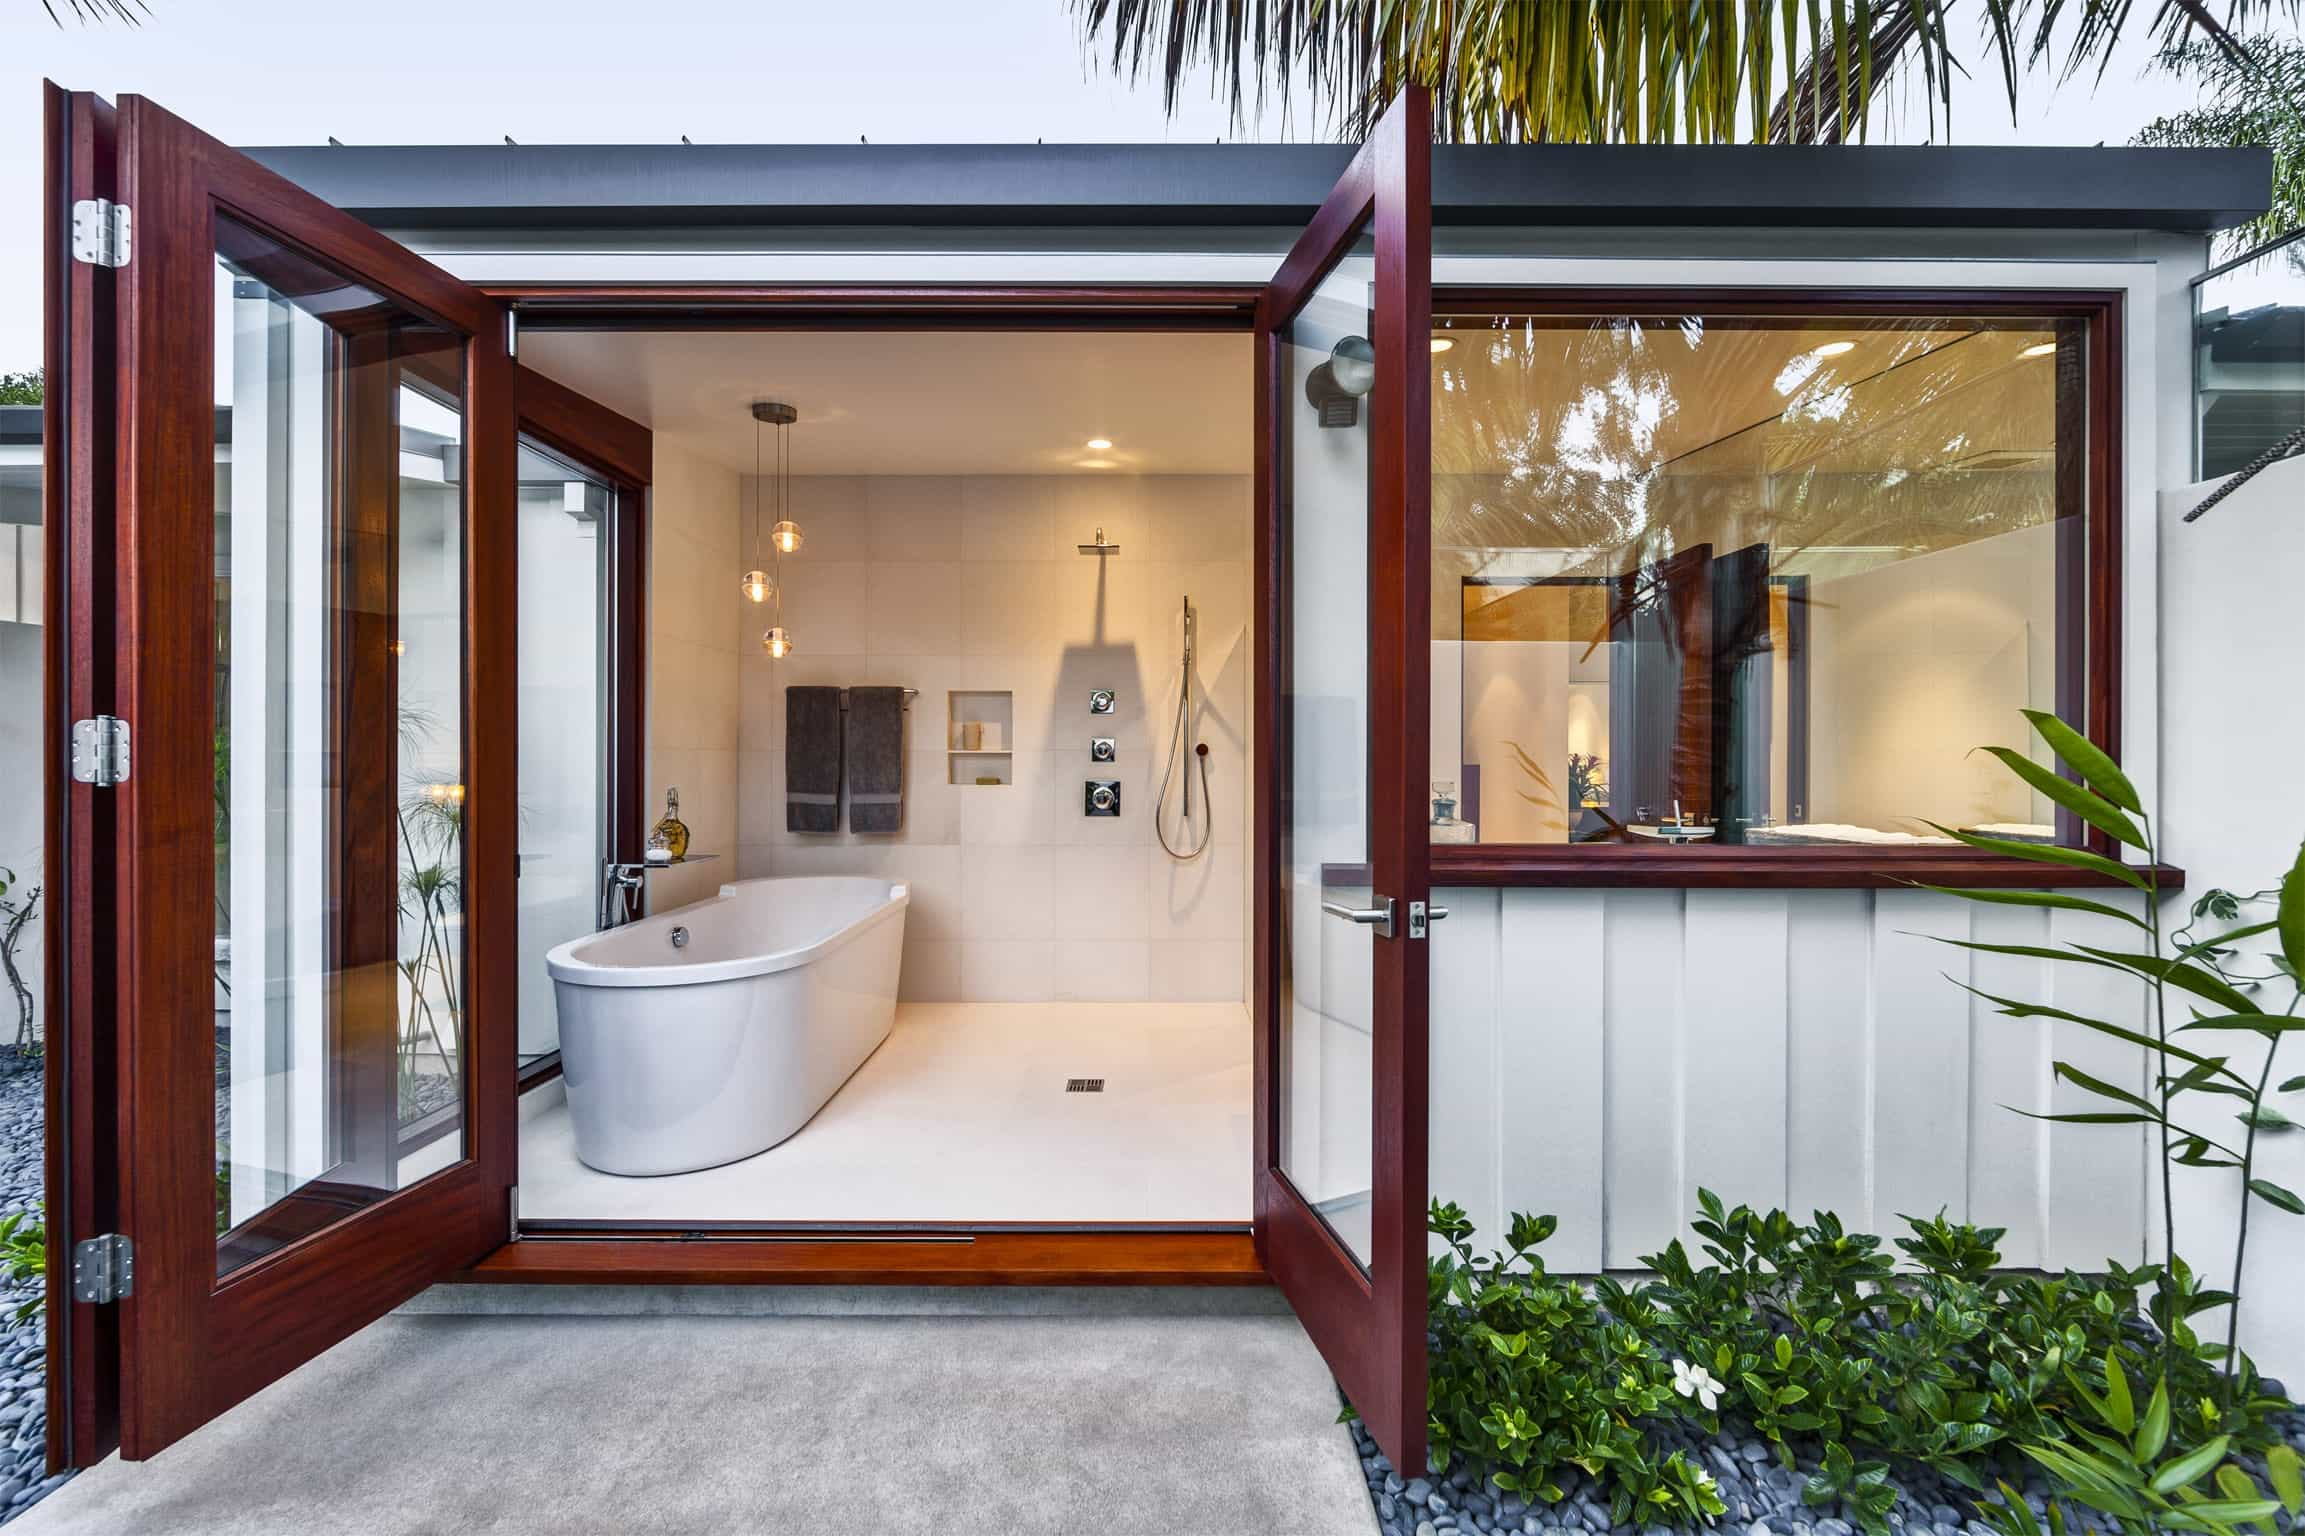 Spacious Spa And Bathroom Combination With Patio Access (Photo 9 of 16)